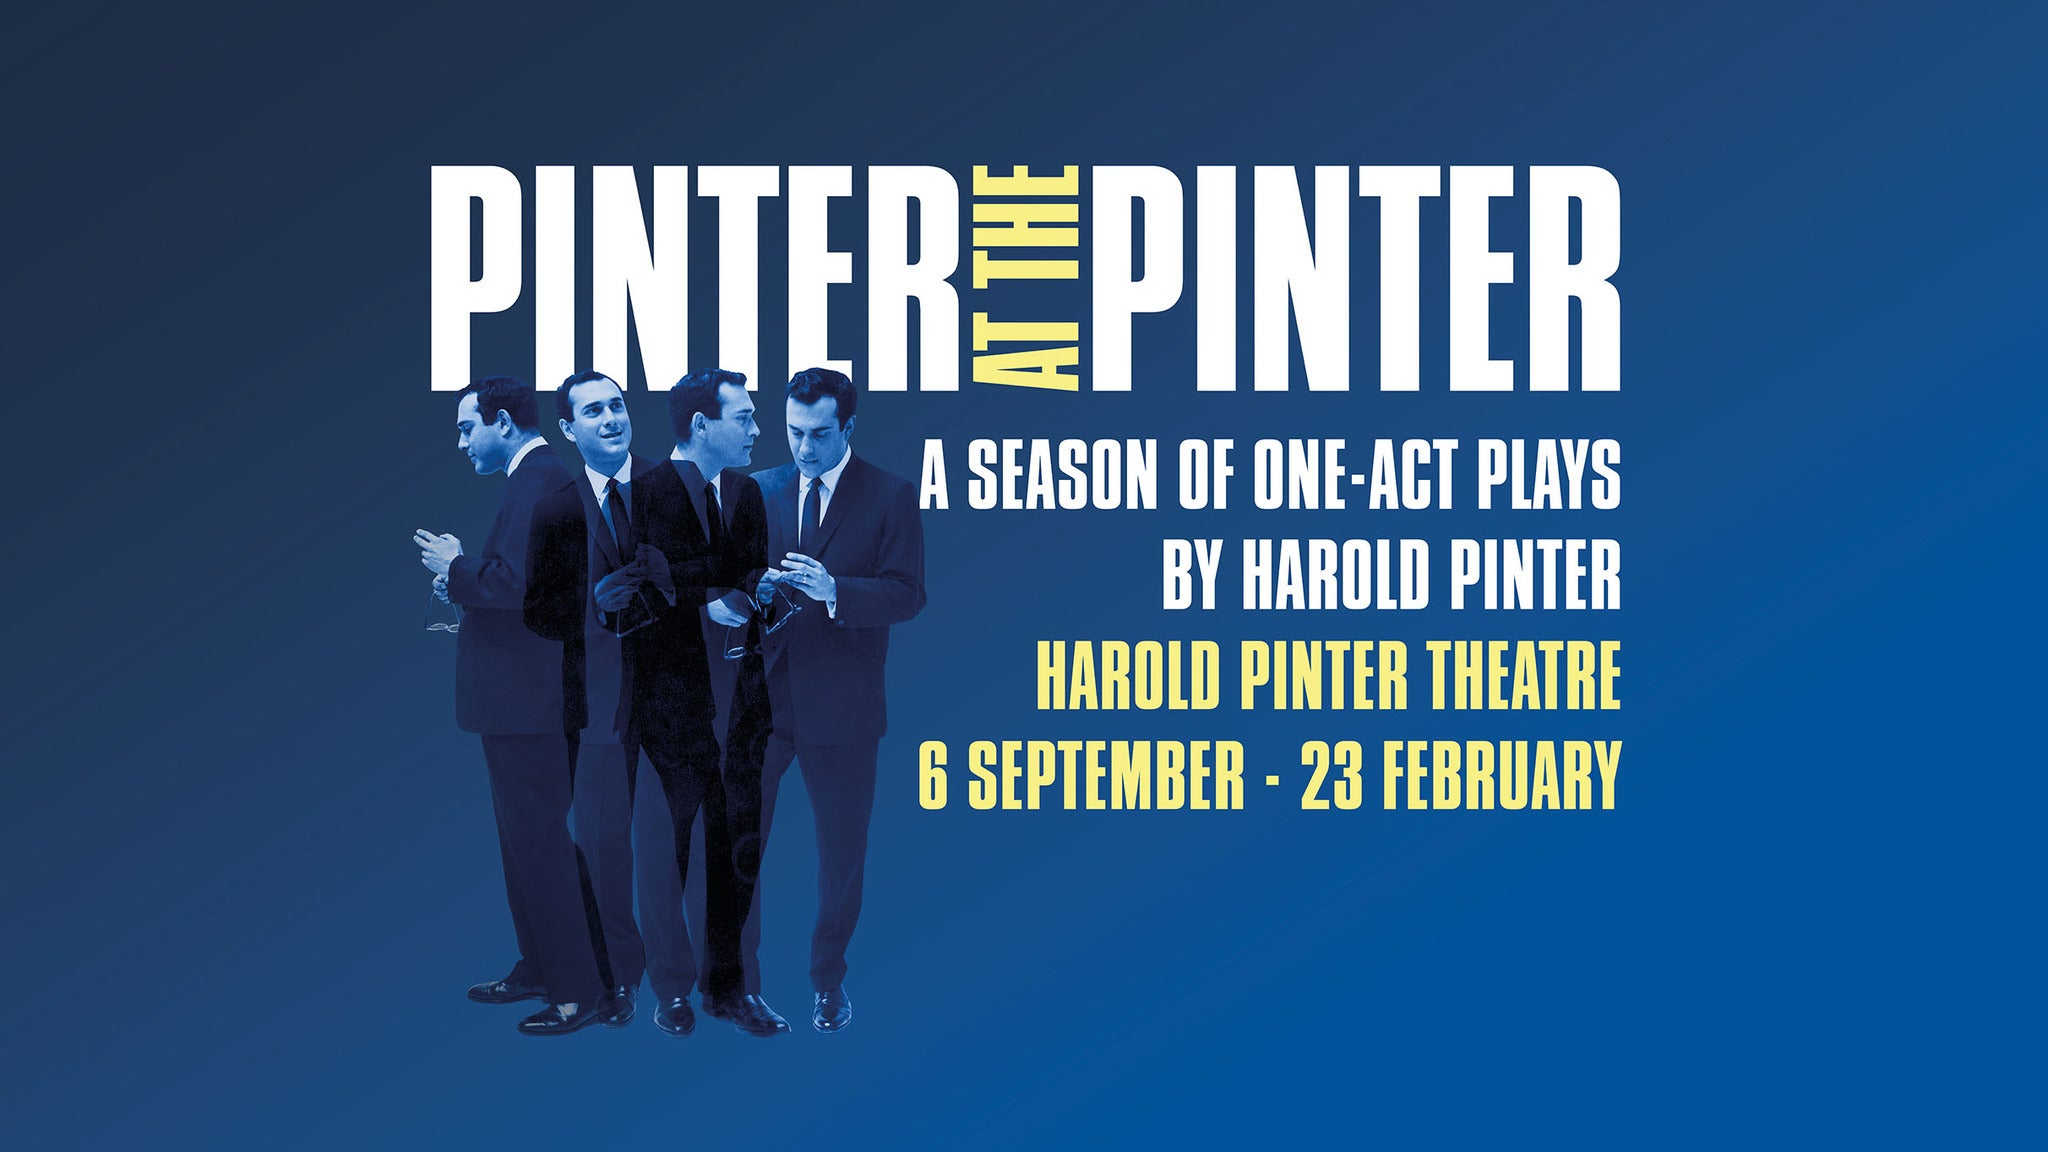 Pinter at The Pinter